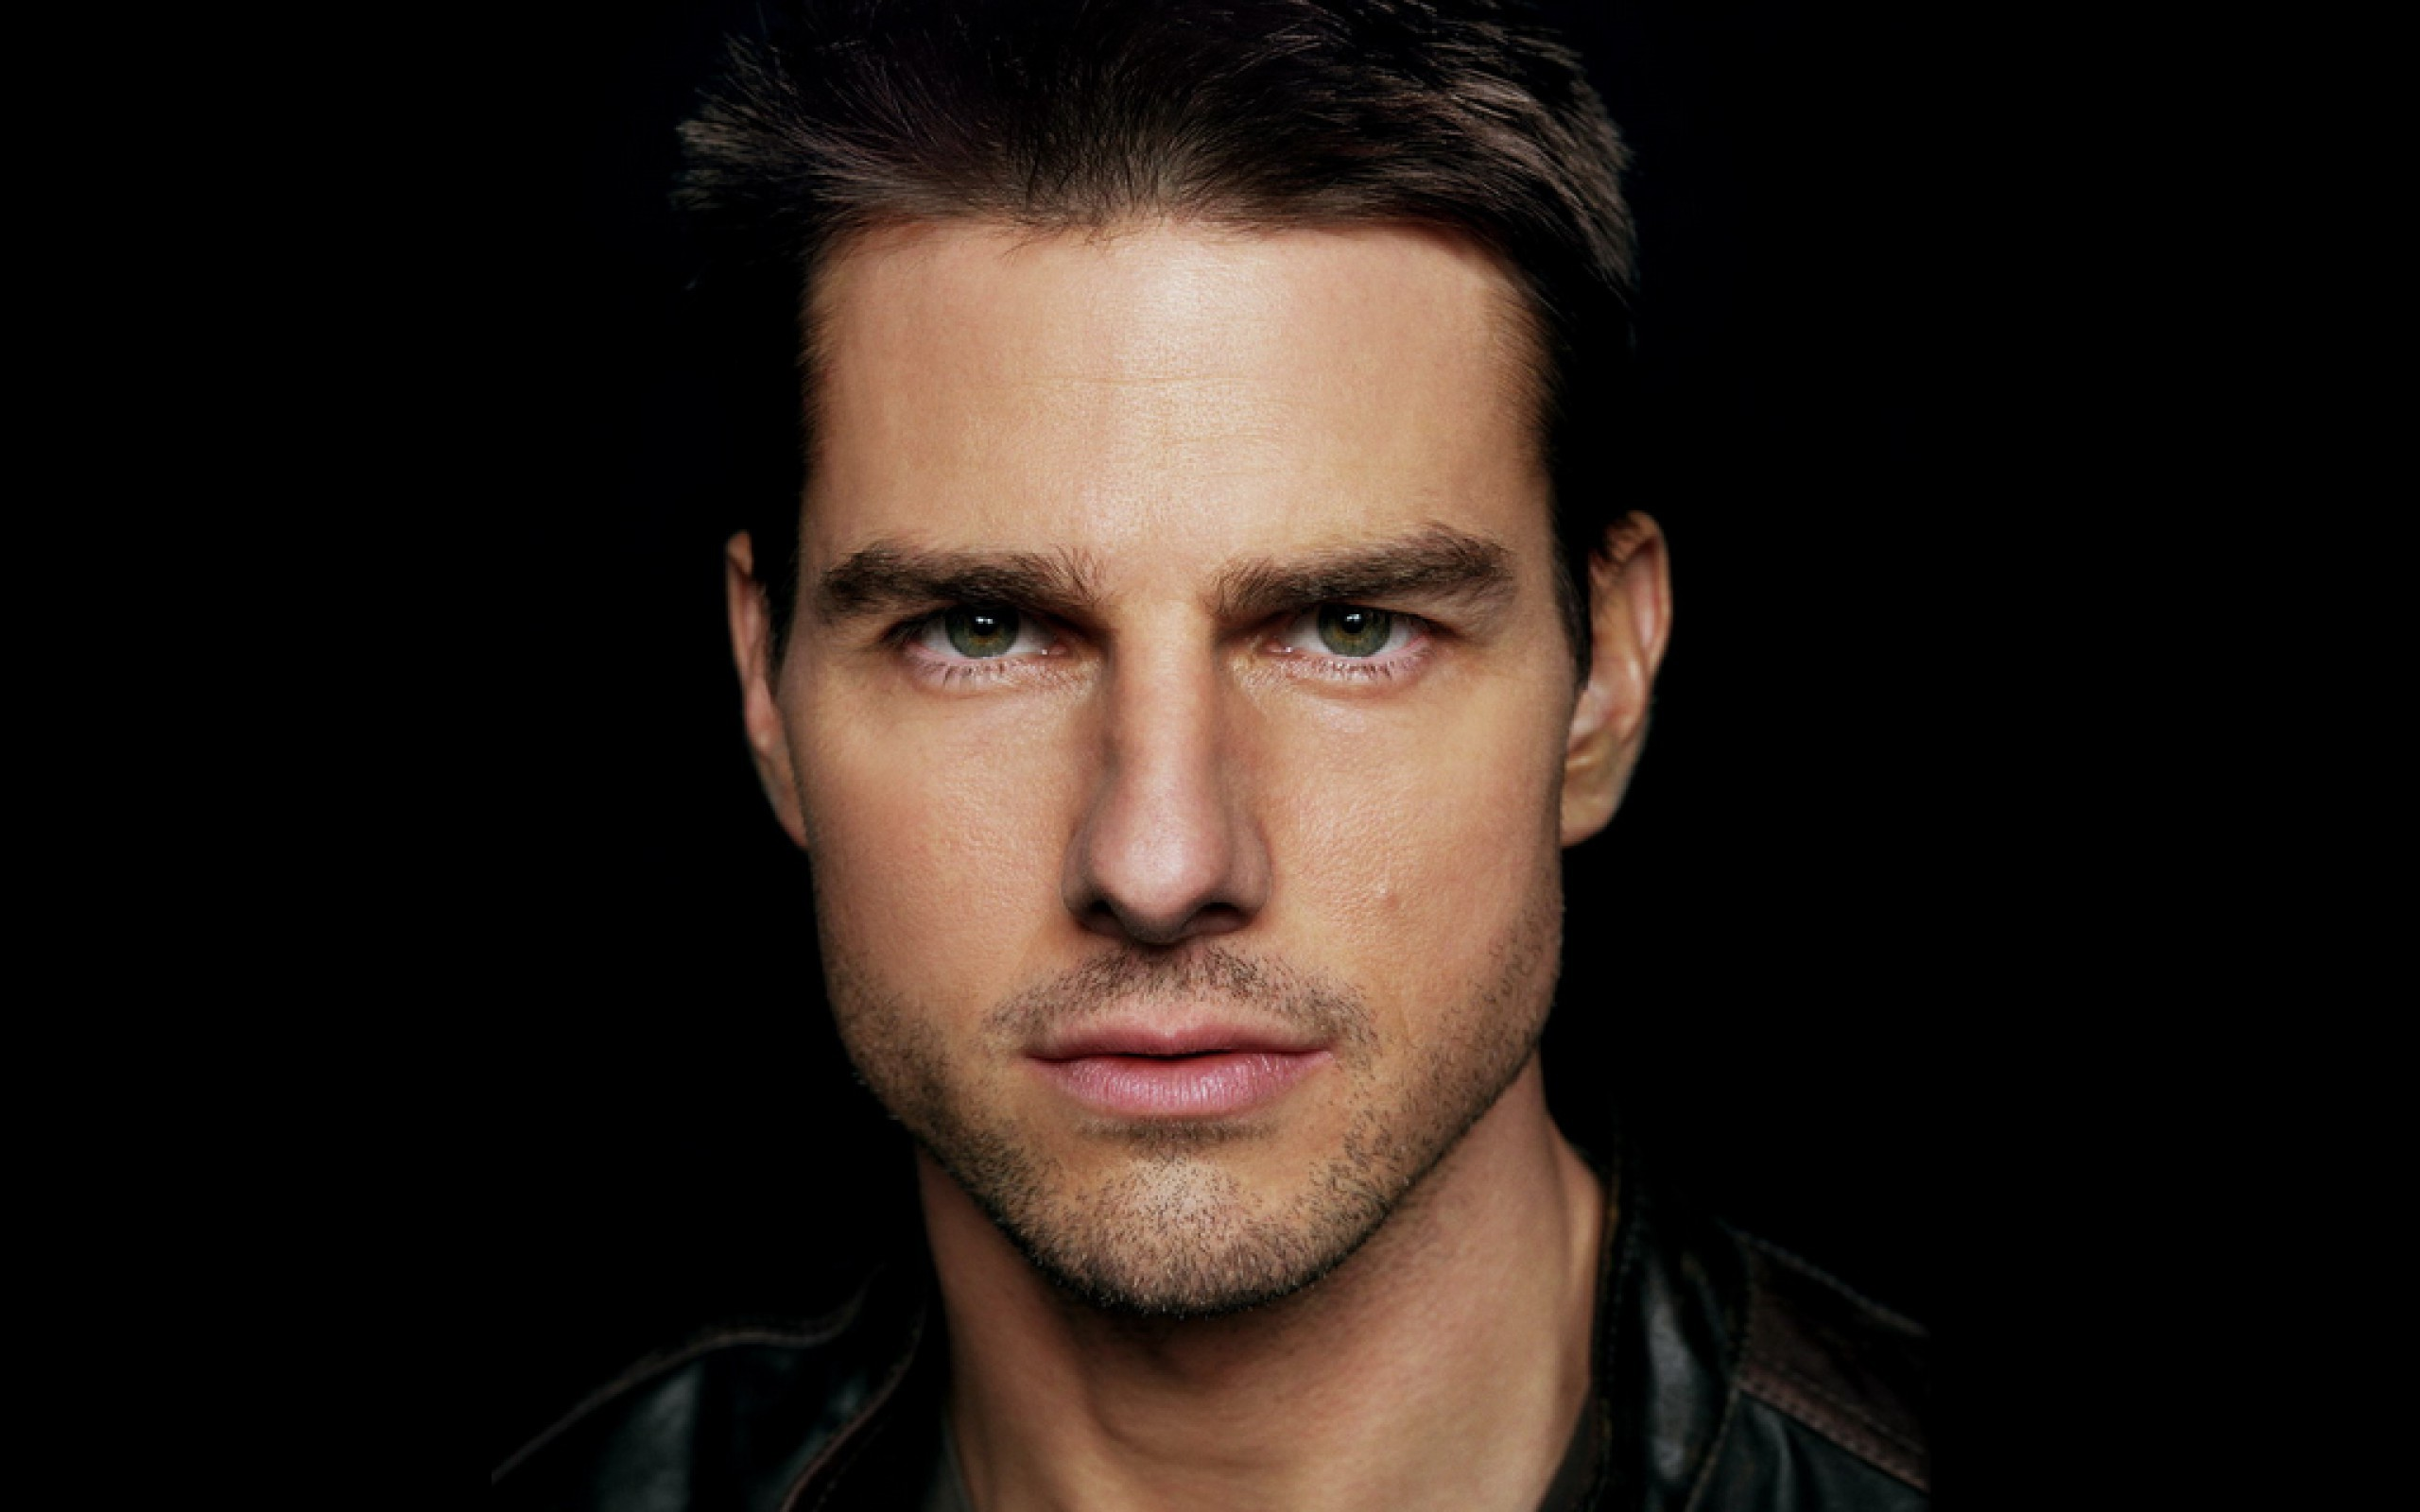 Tom Cruise Wallpaper 13 photo